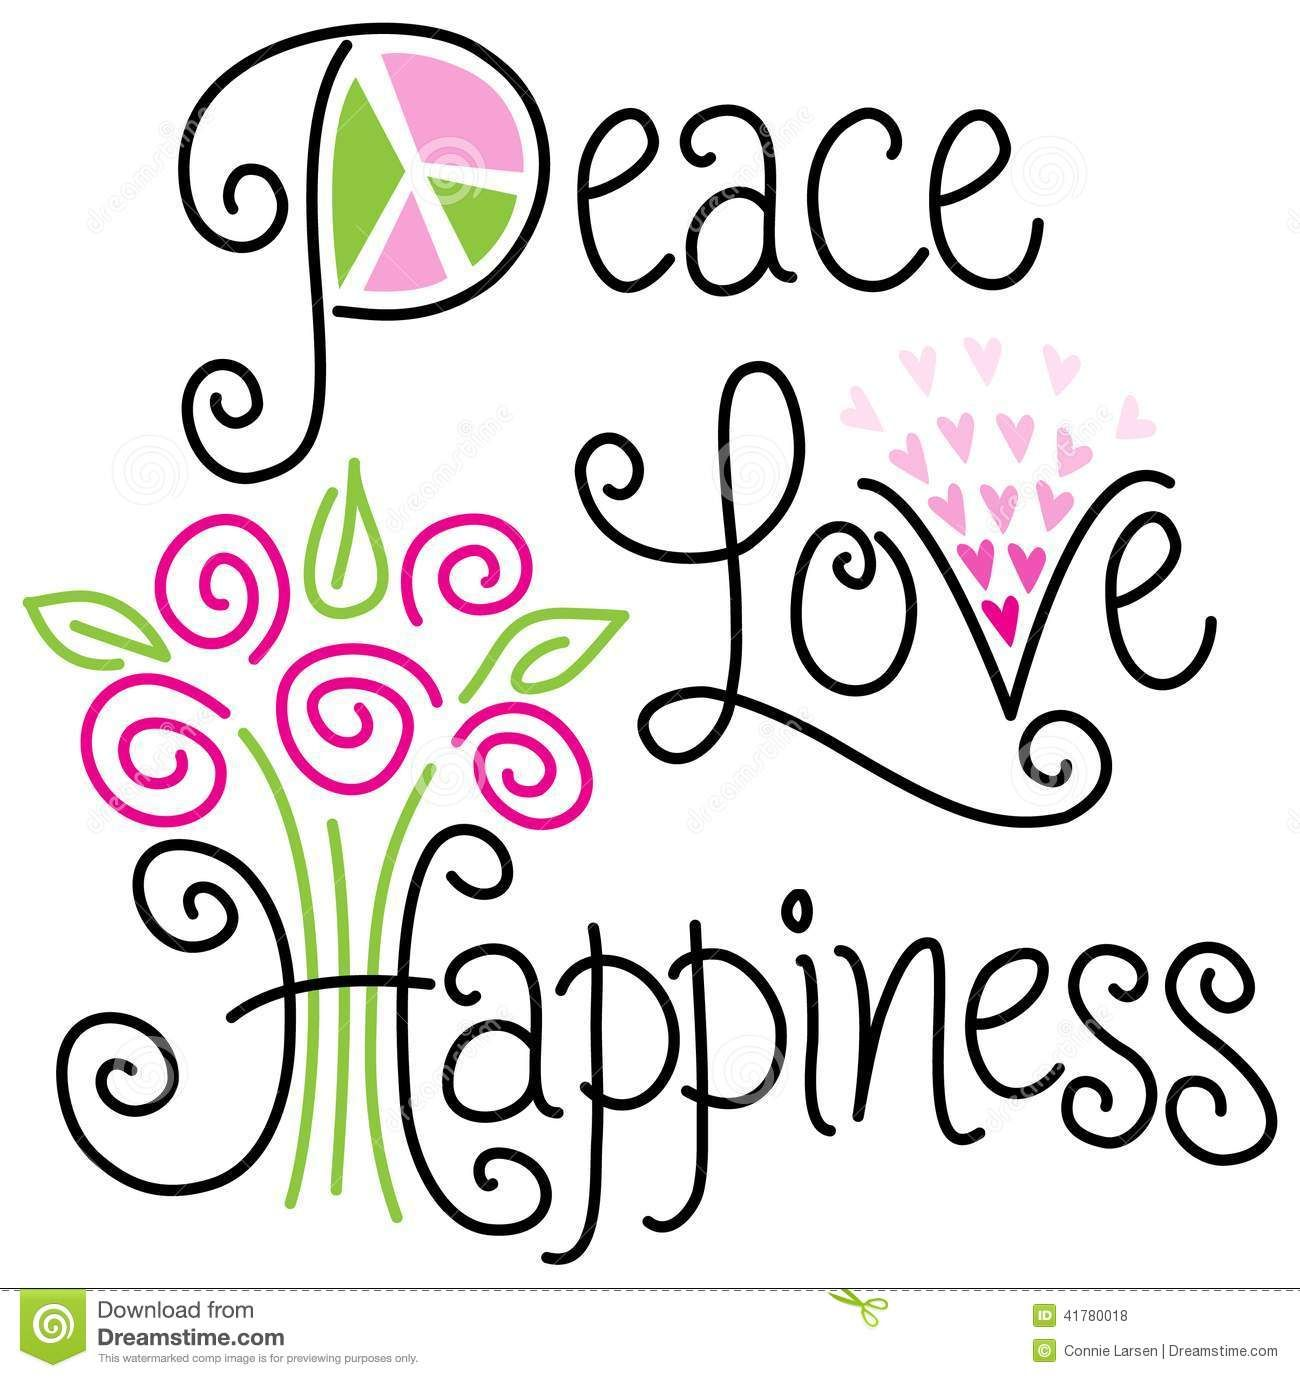 Peace Love And Happiness Quotes Adorable Peace Love And Happinesseps Stock Vector  Image 41780018  A